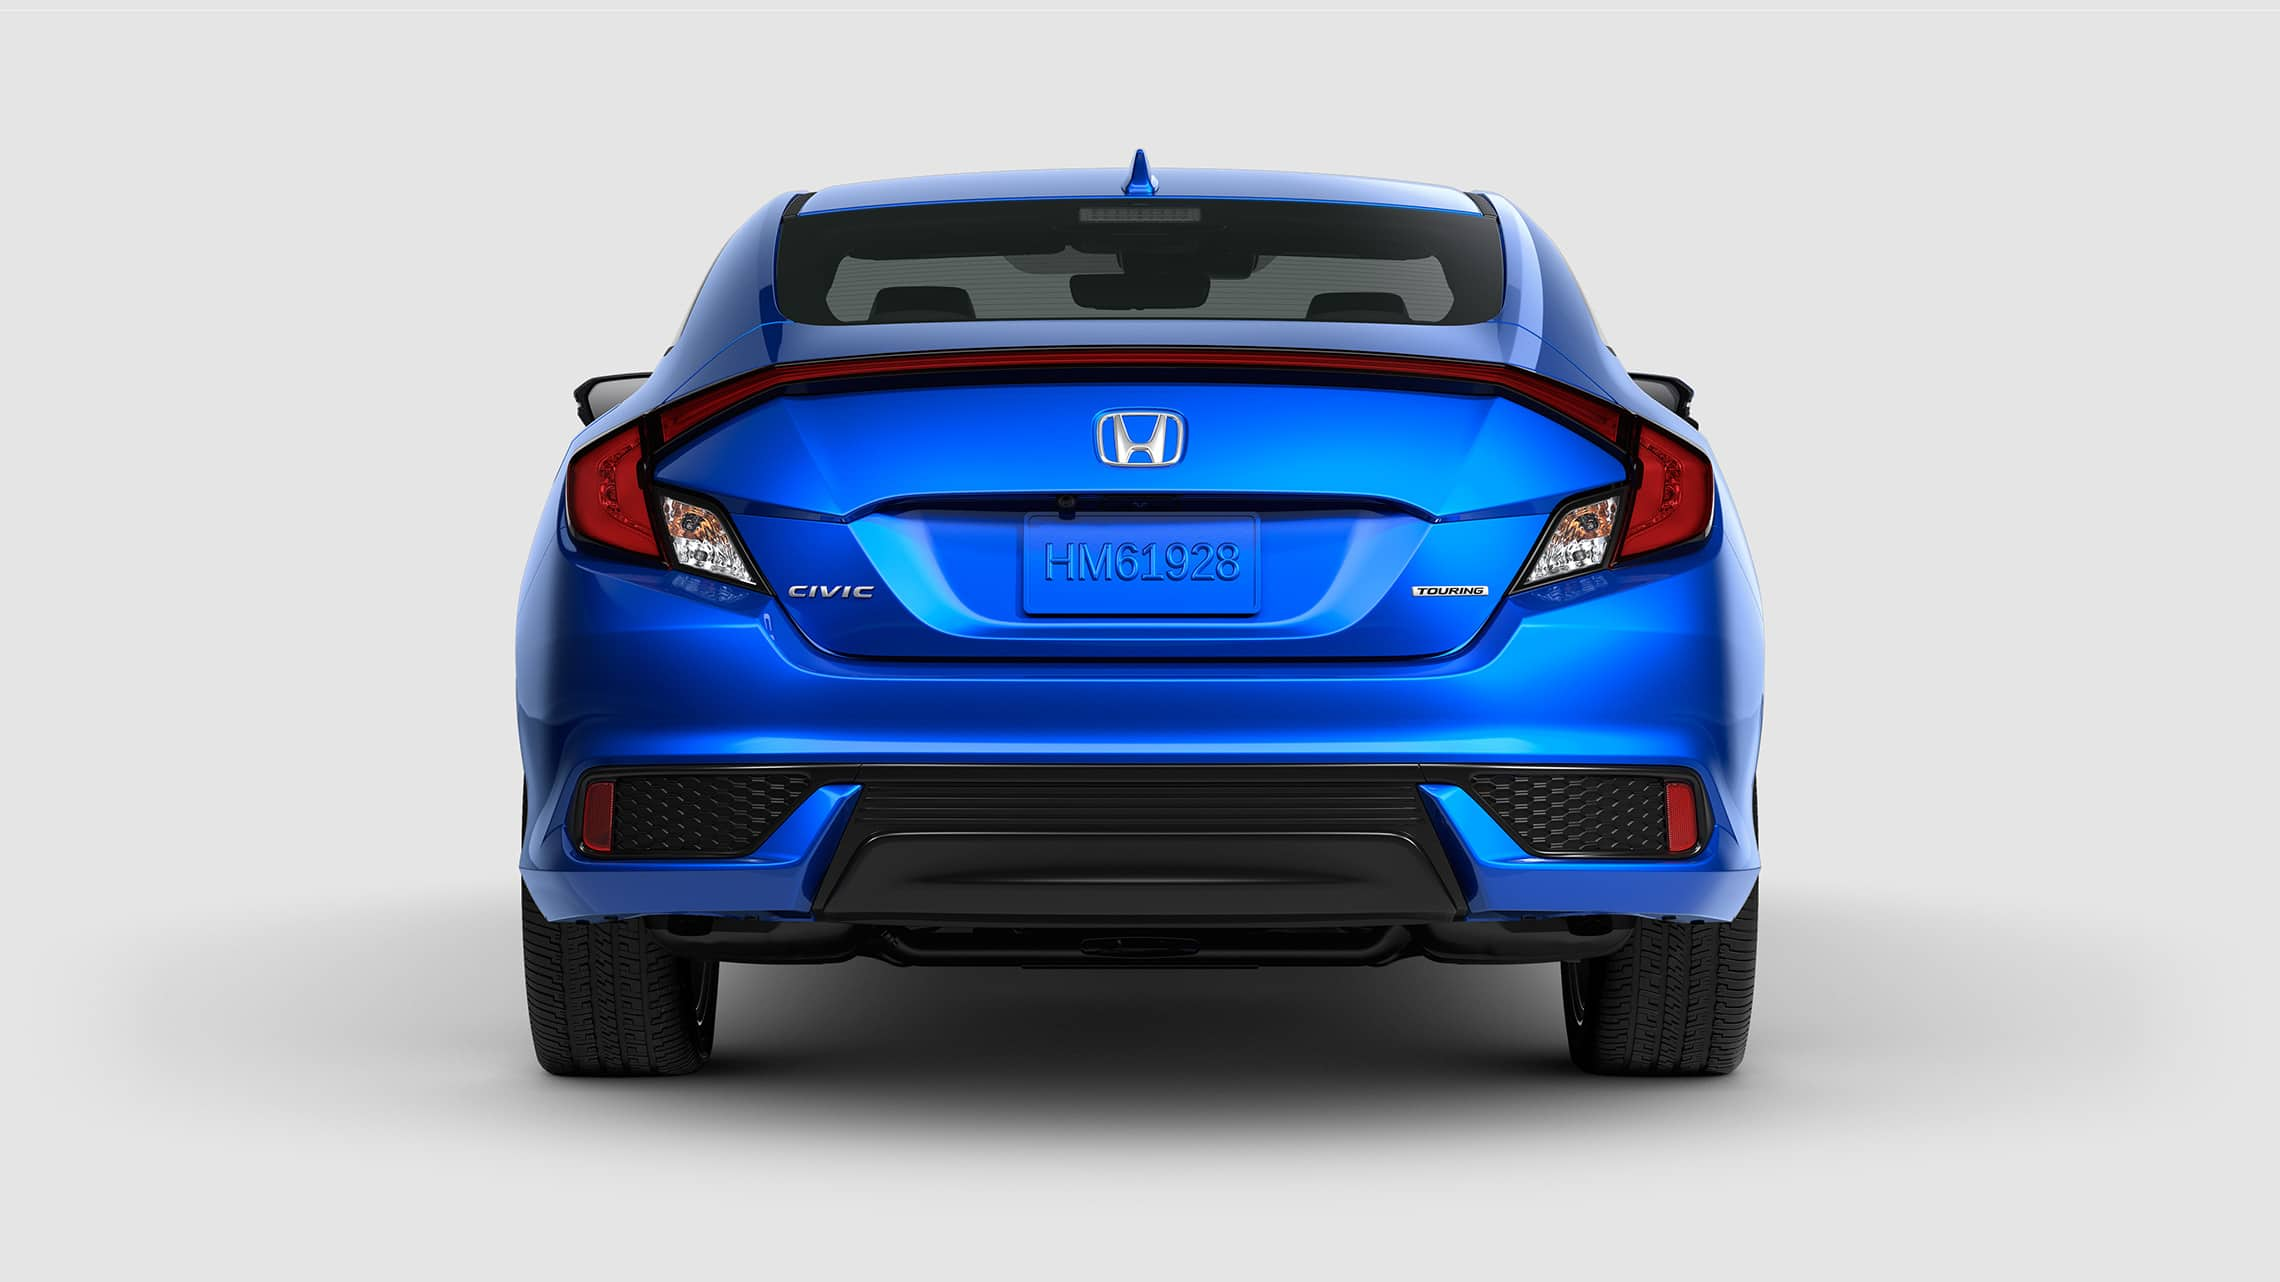 Vista trasera del Honda Civic Touring Coupé 2020 en Aegean Blue Metallic.